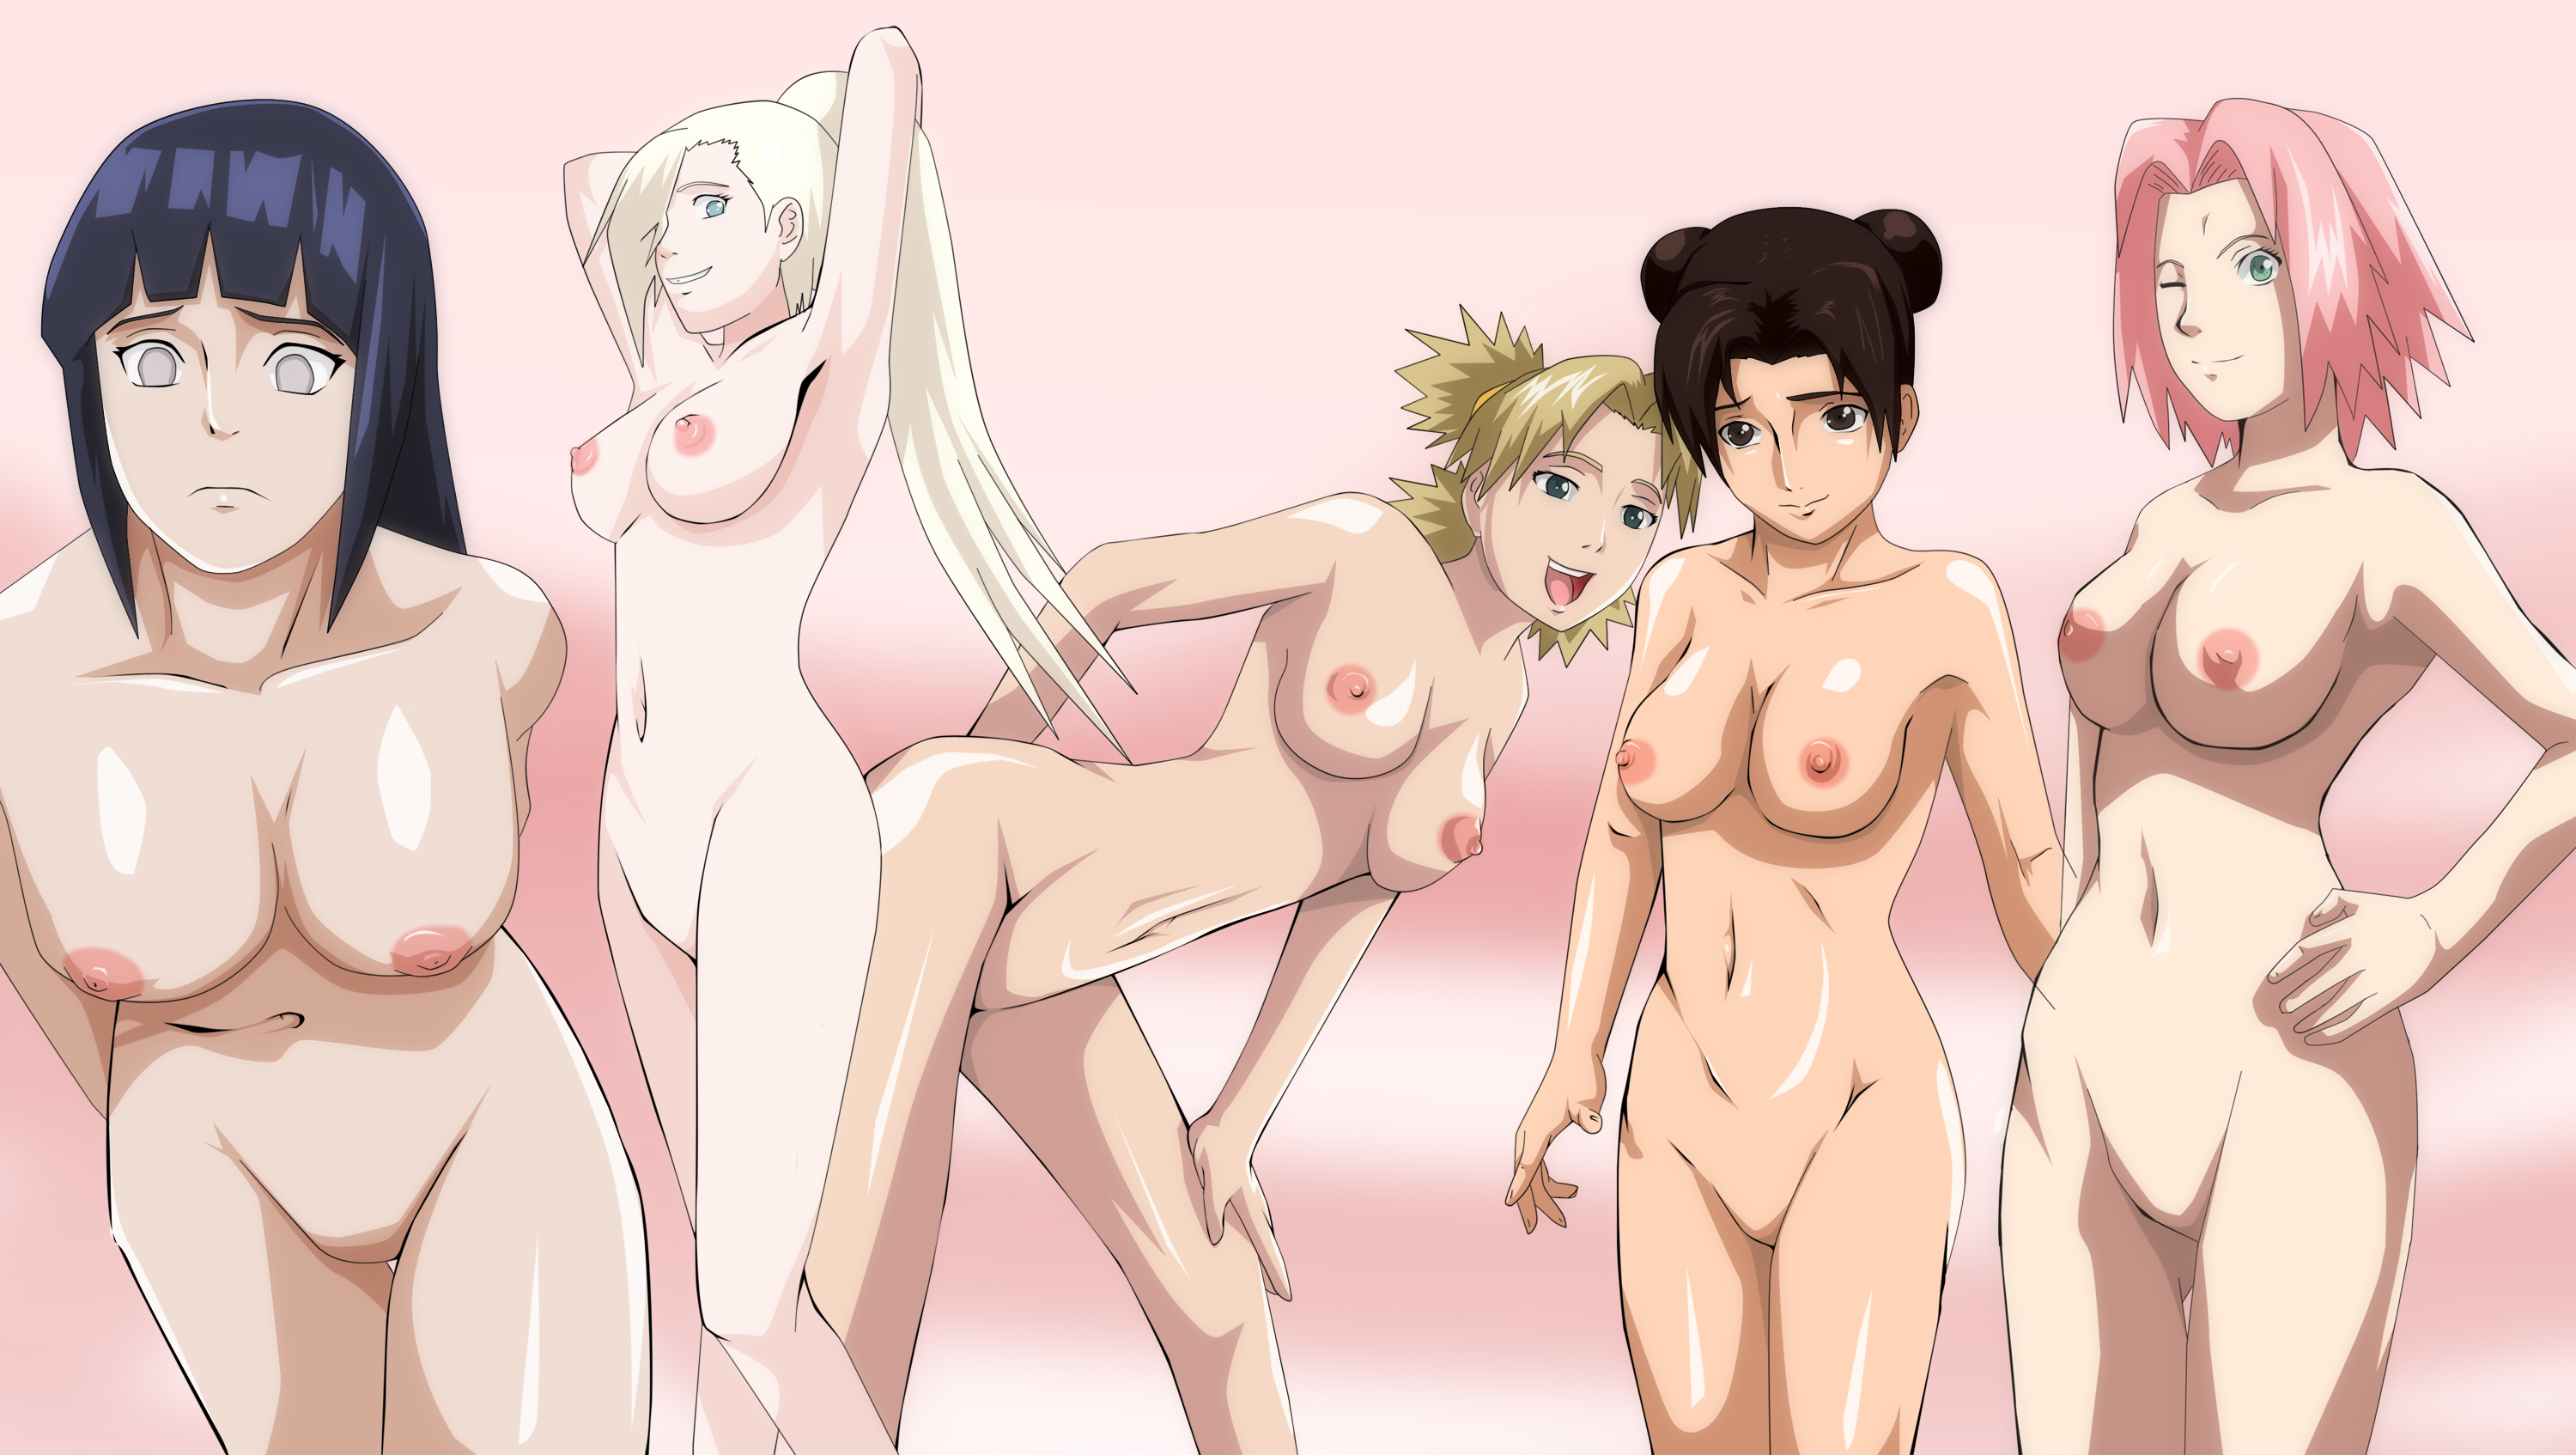 Nude sexy naruto girl pics exposed images